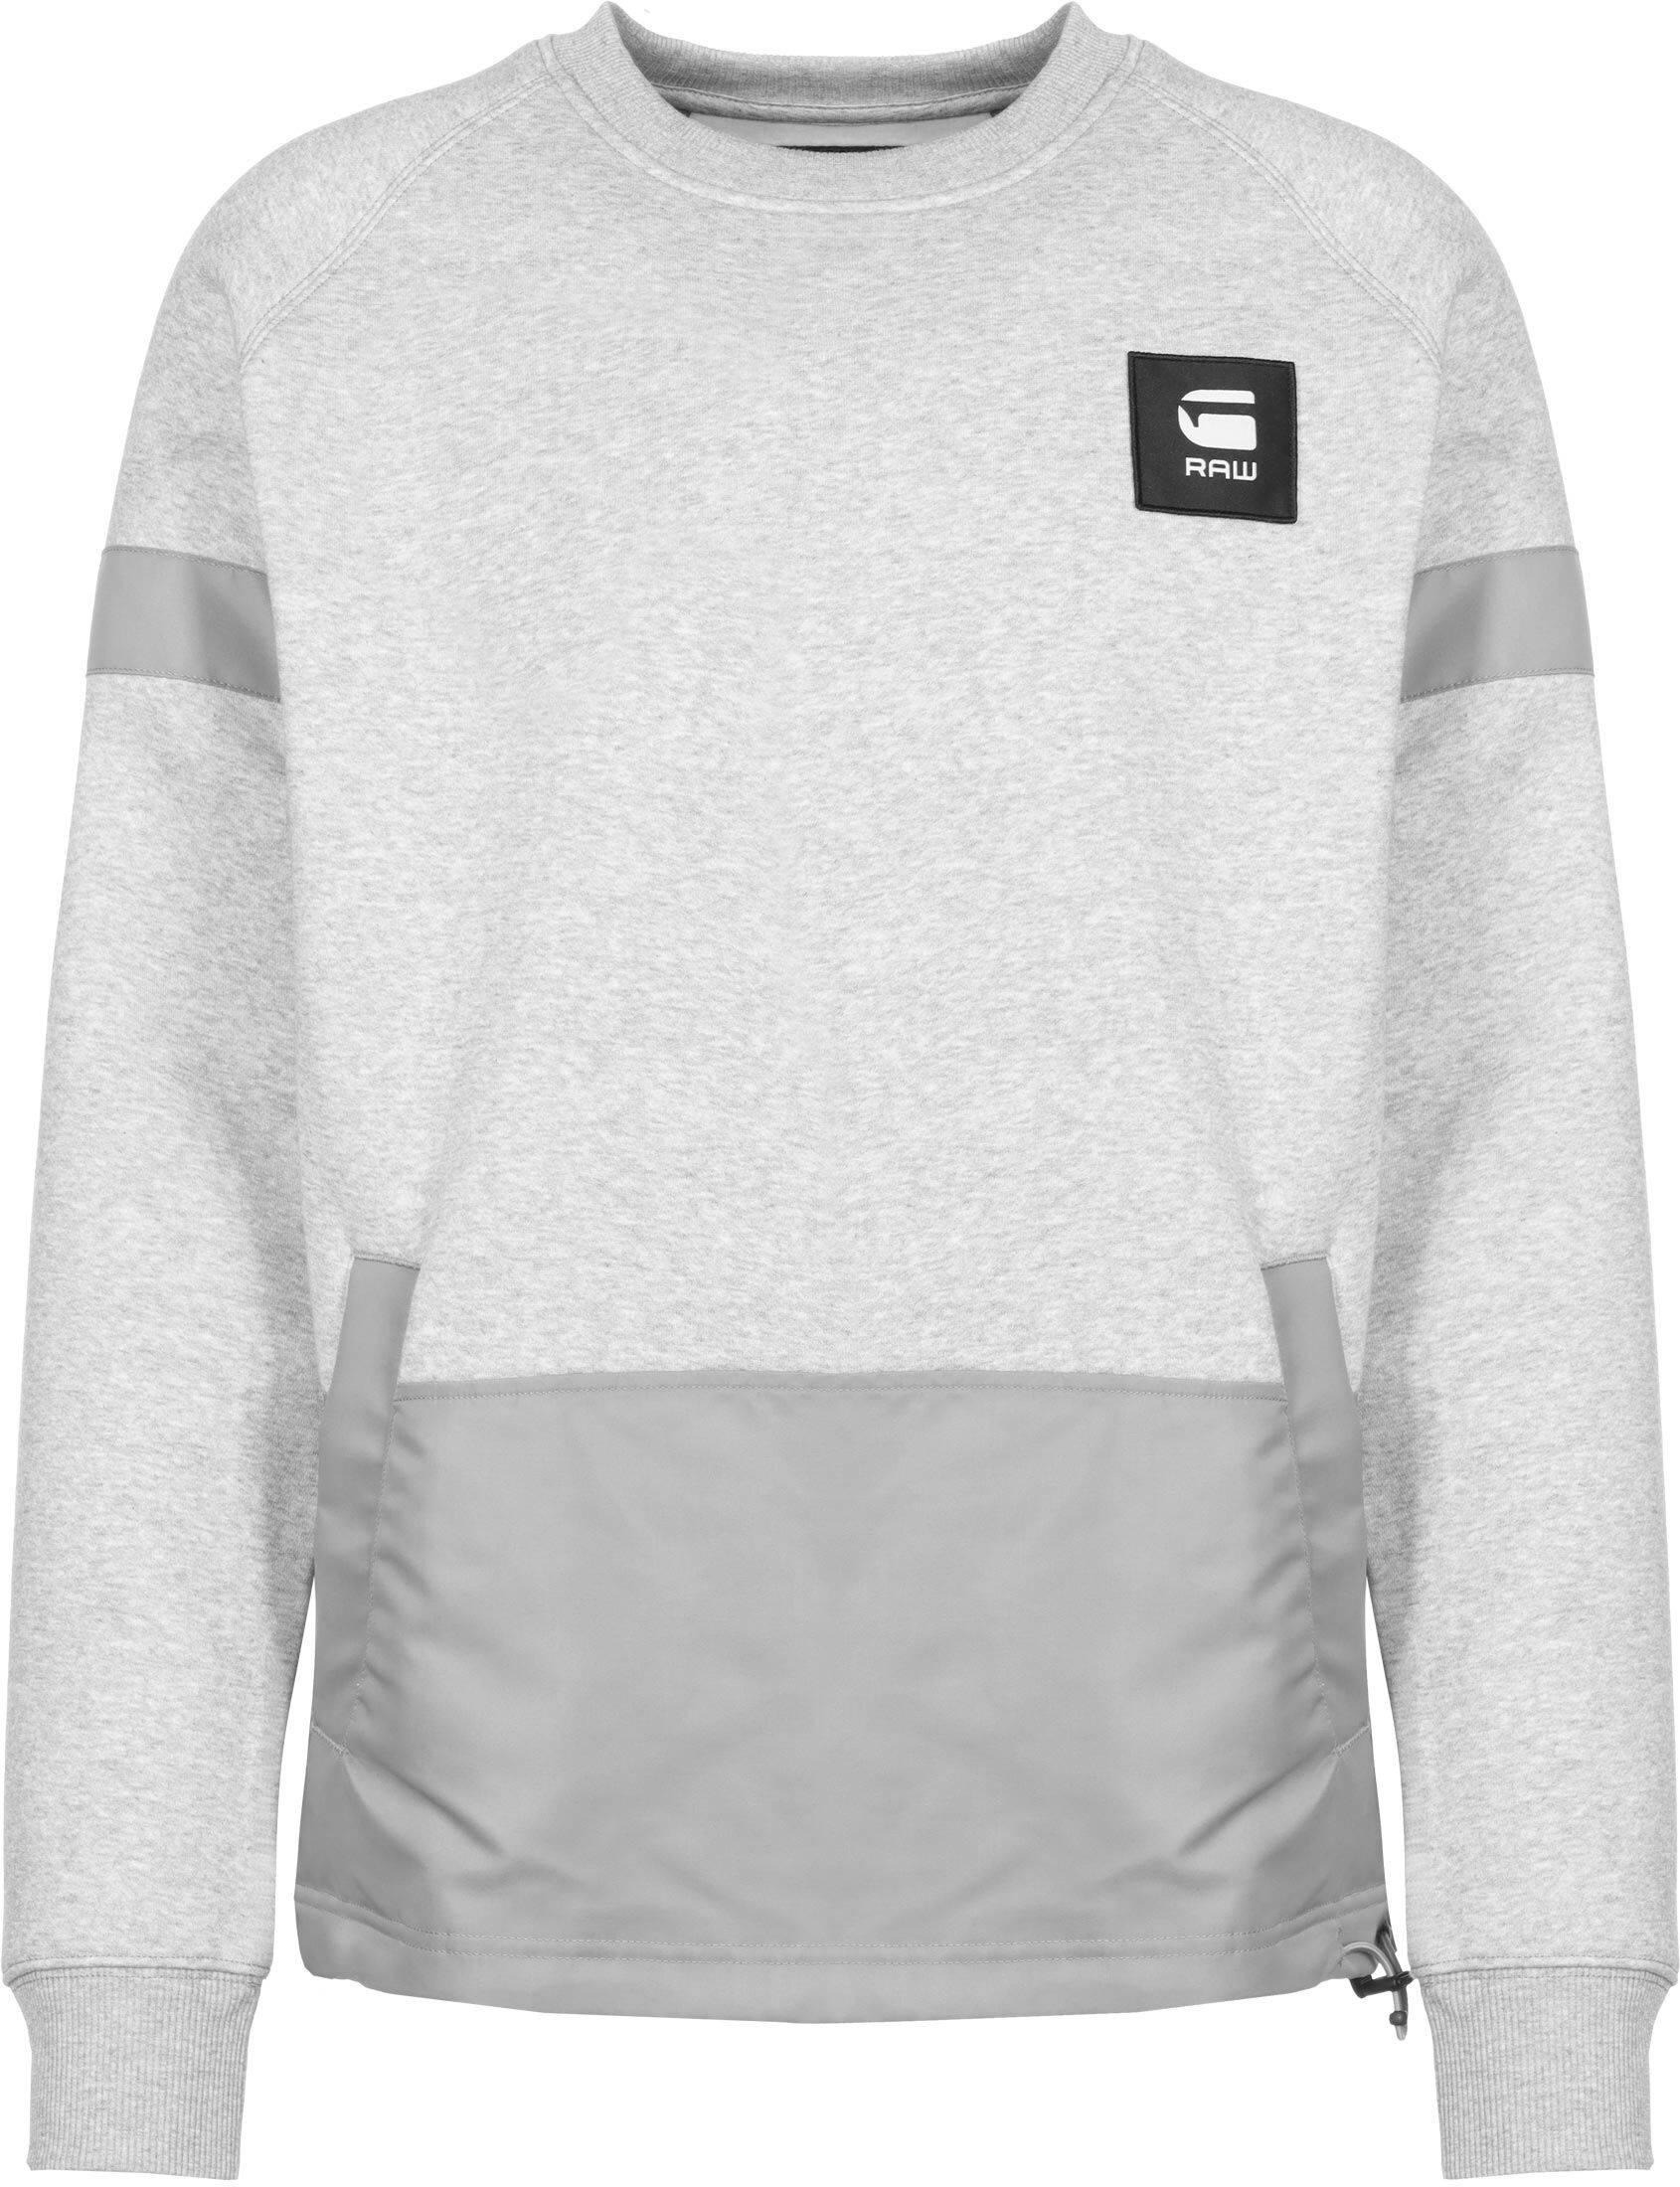 G-Star RAW G-Star Prisoner Mix, taille M, homme, gris chiné